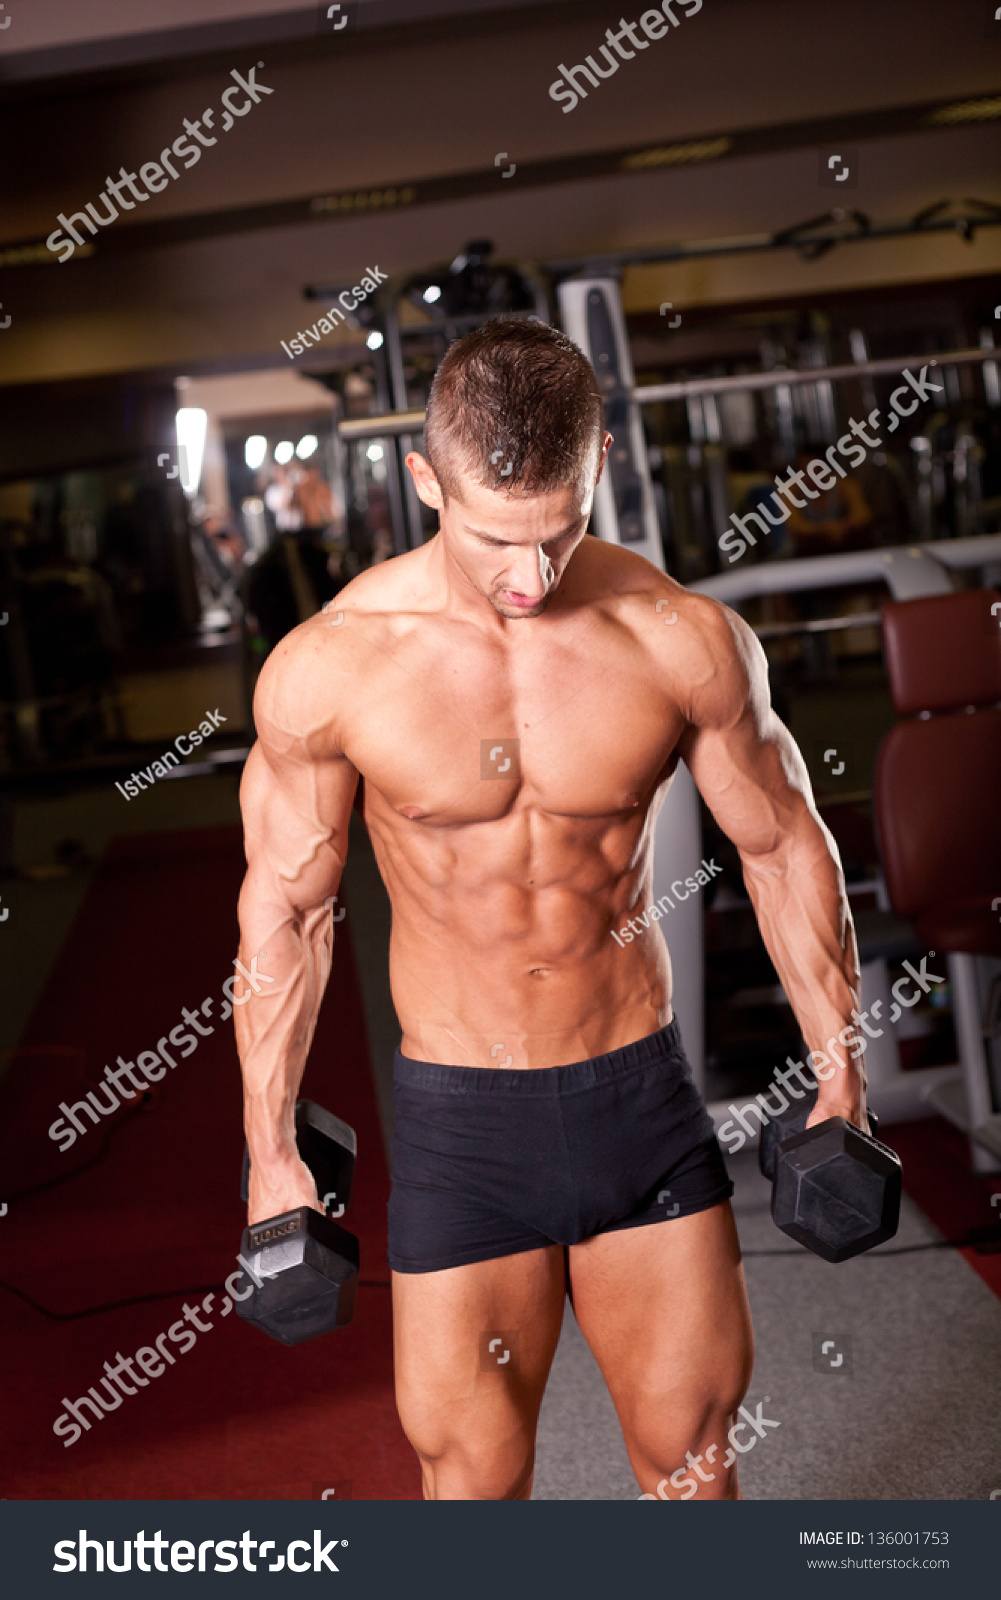 Bodybuilder Training Gym Stock Photo 136001753 - Shutterstock